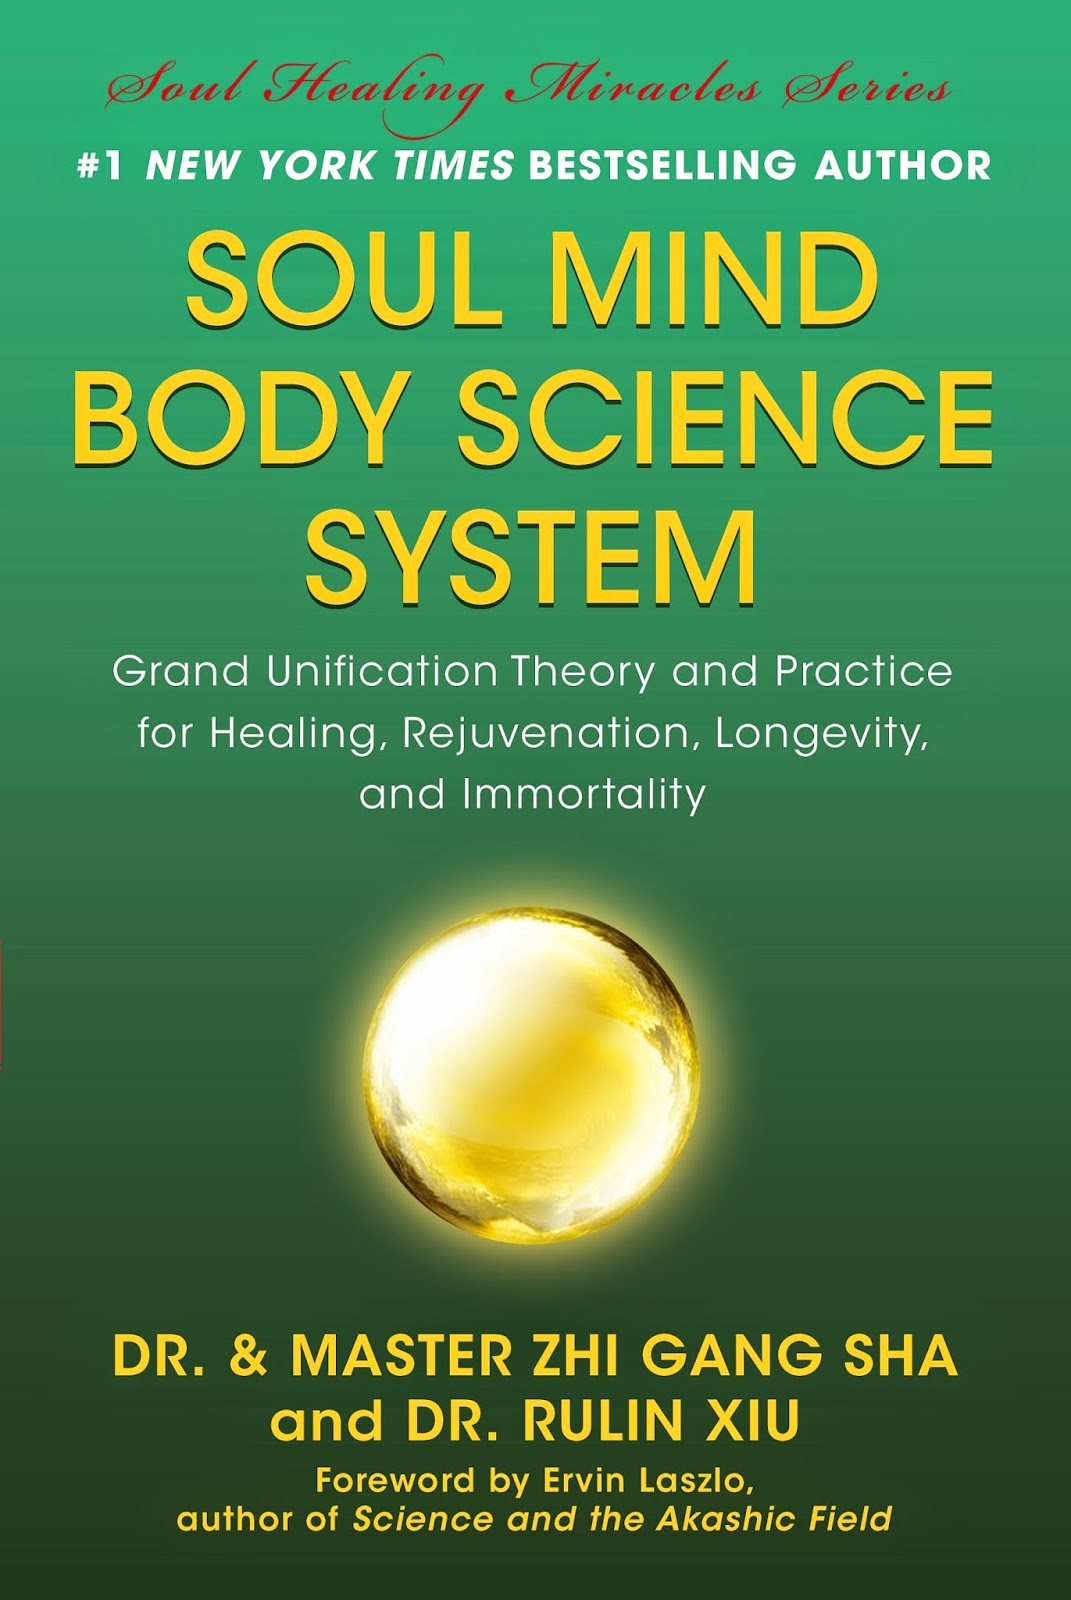 Soul mind body science The Grand Unification Theory-